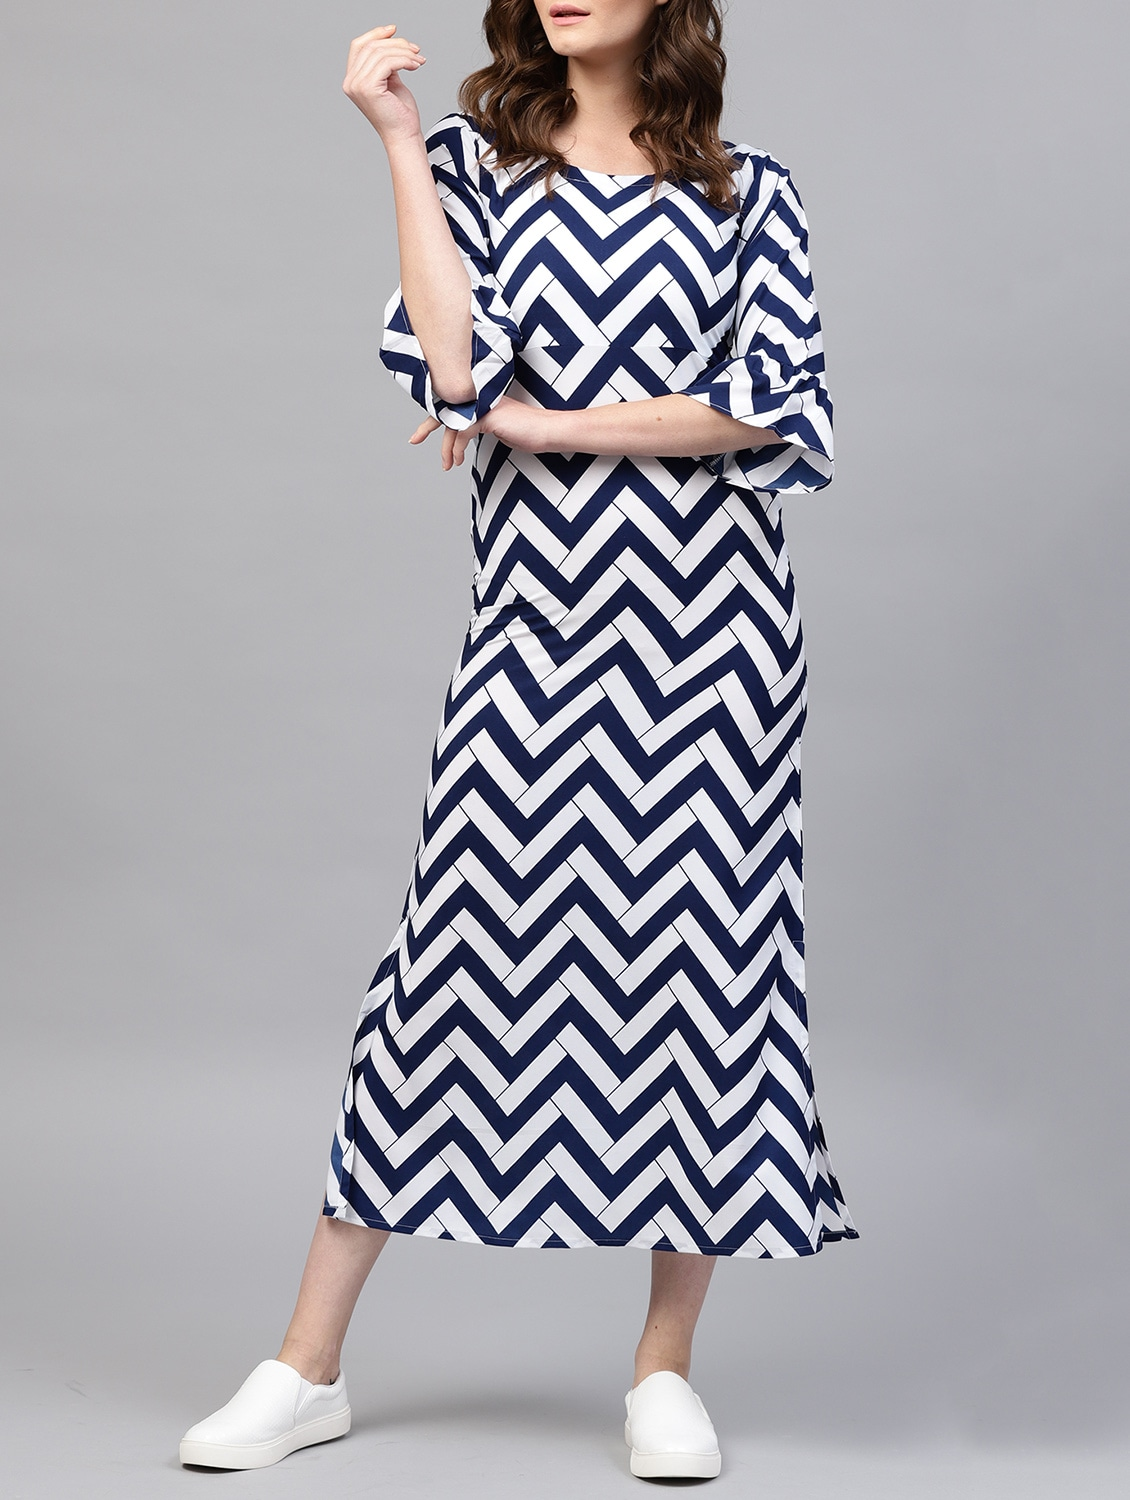 6c10230d0ea Buy Chevron Bell Sleeved Maxi Dress for Women from Gerua for ₹899 at 40%  off